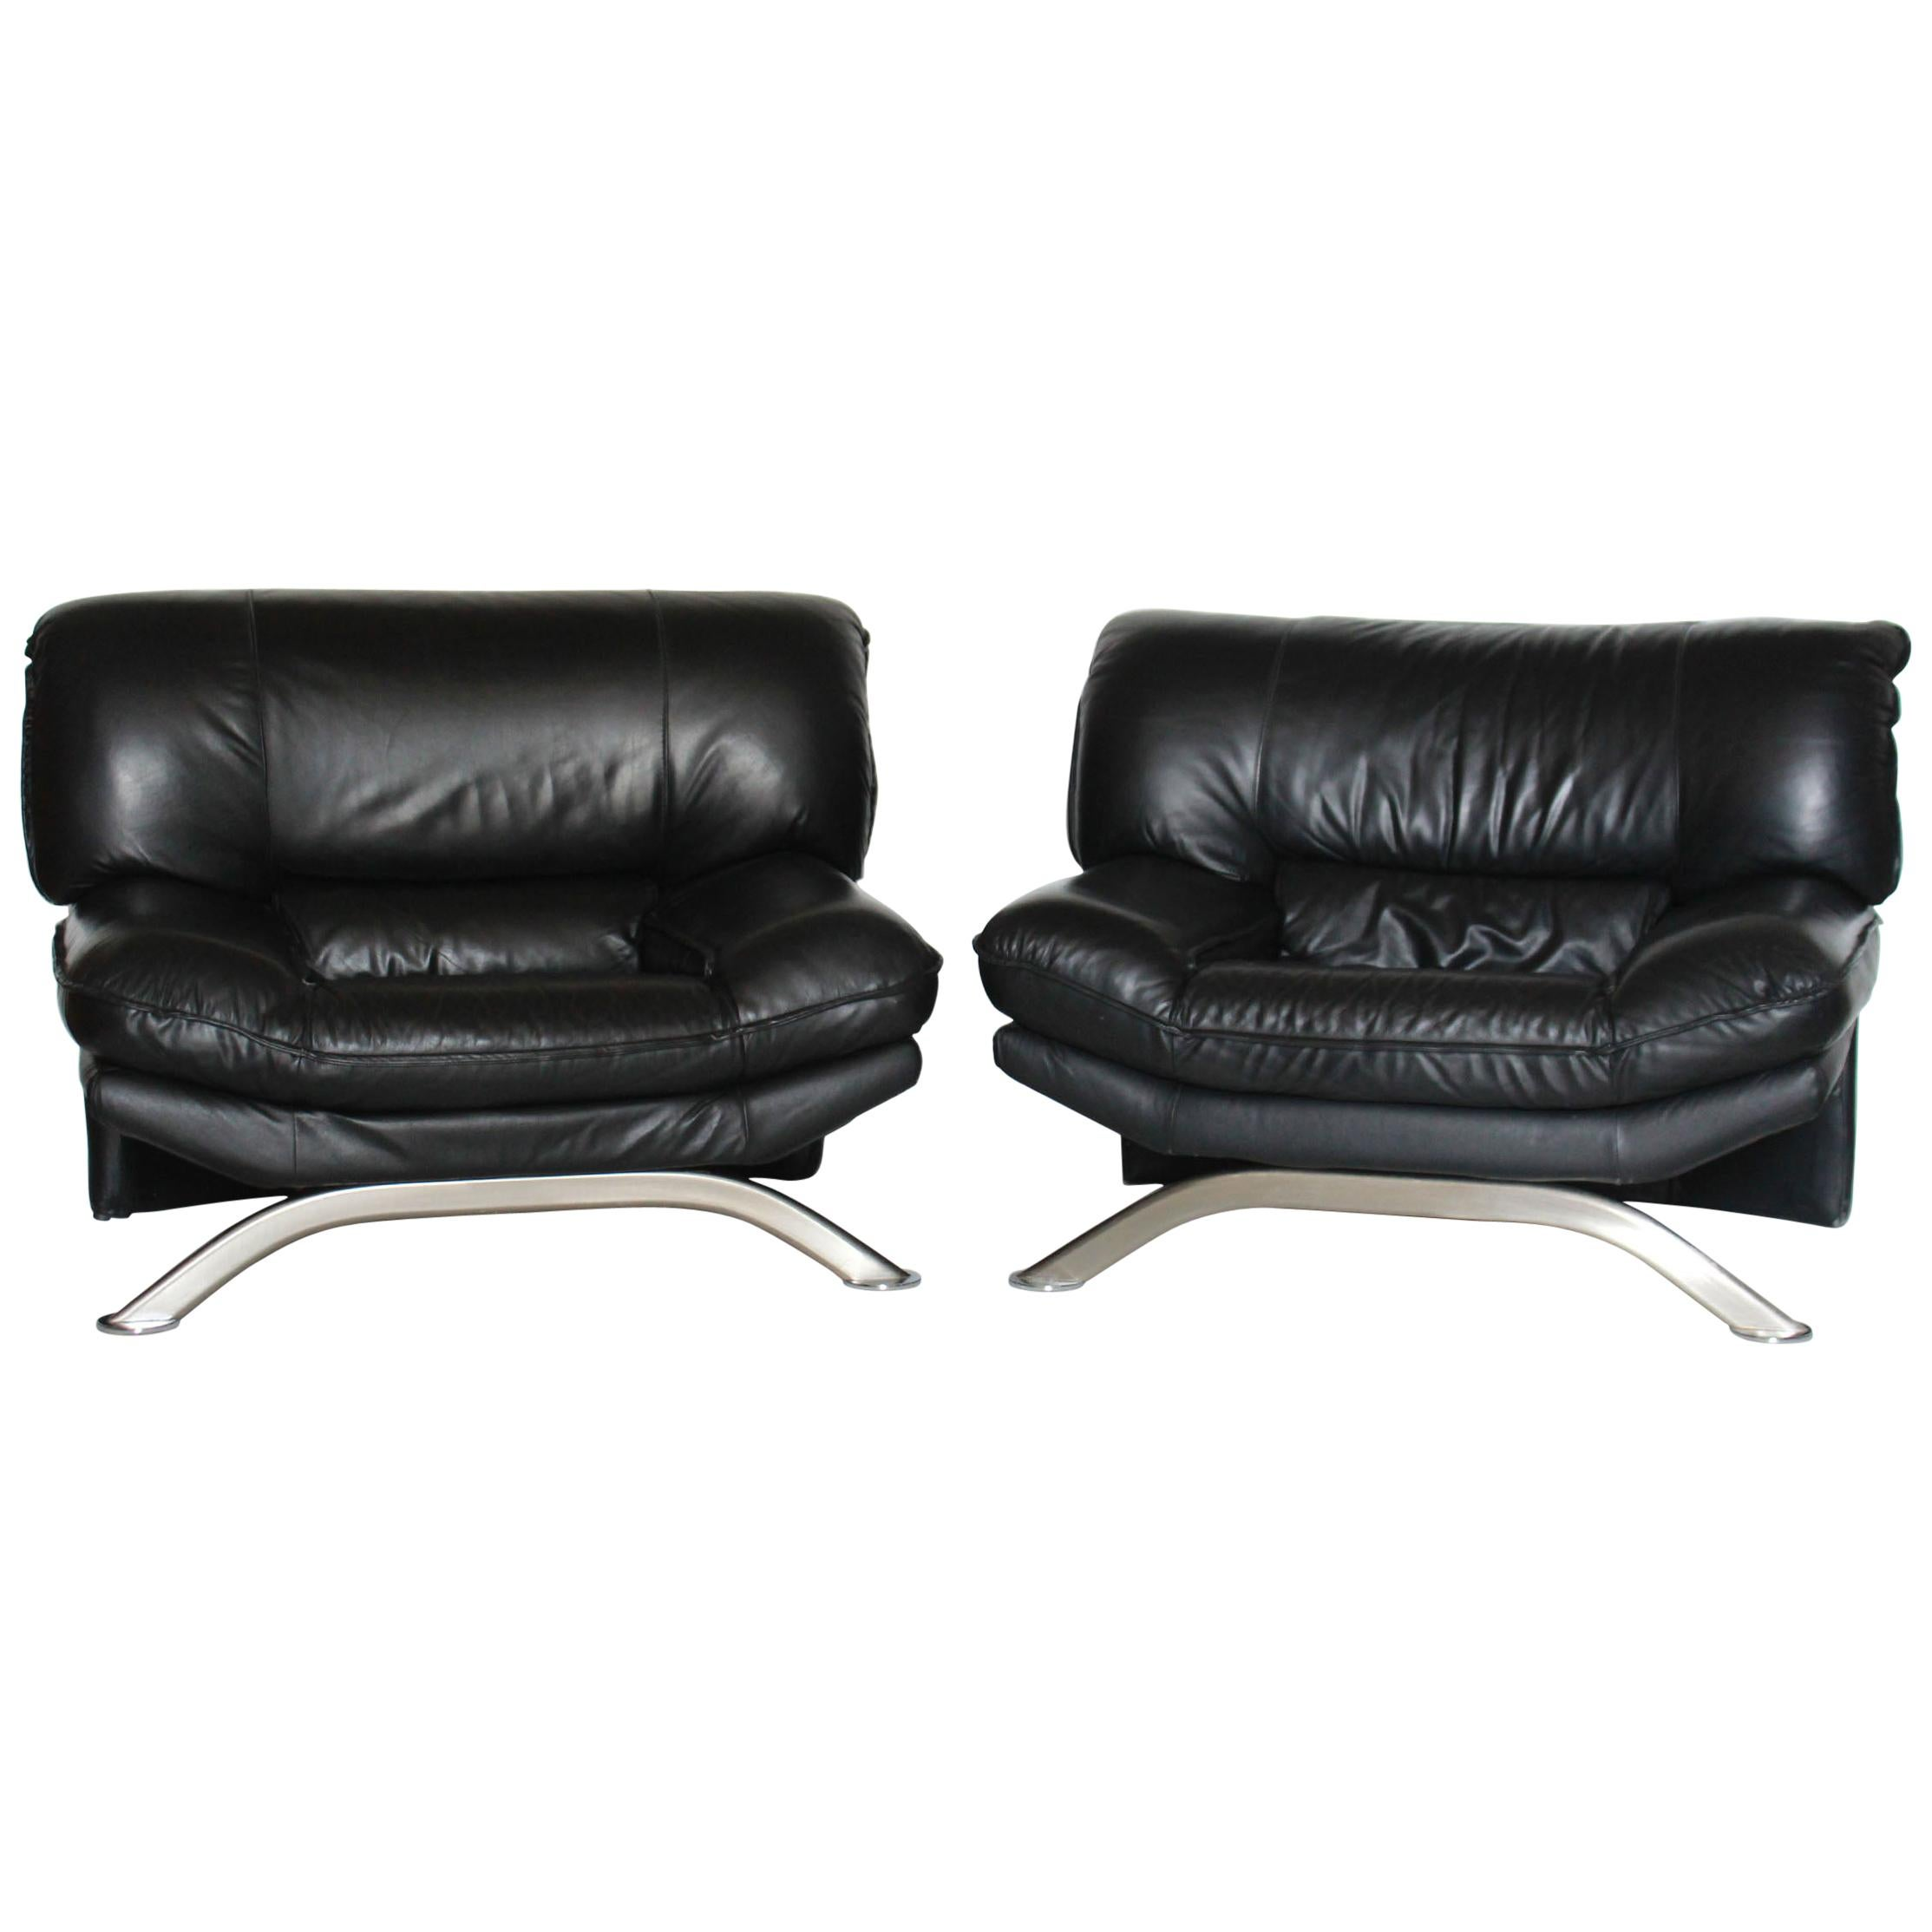 1980s Leather Vintage Armchairs, Set of Two